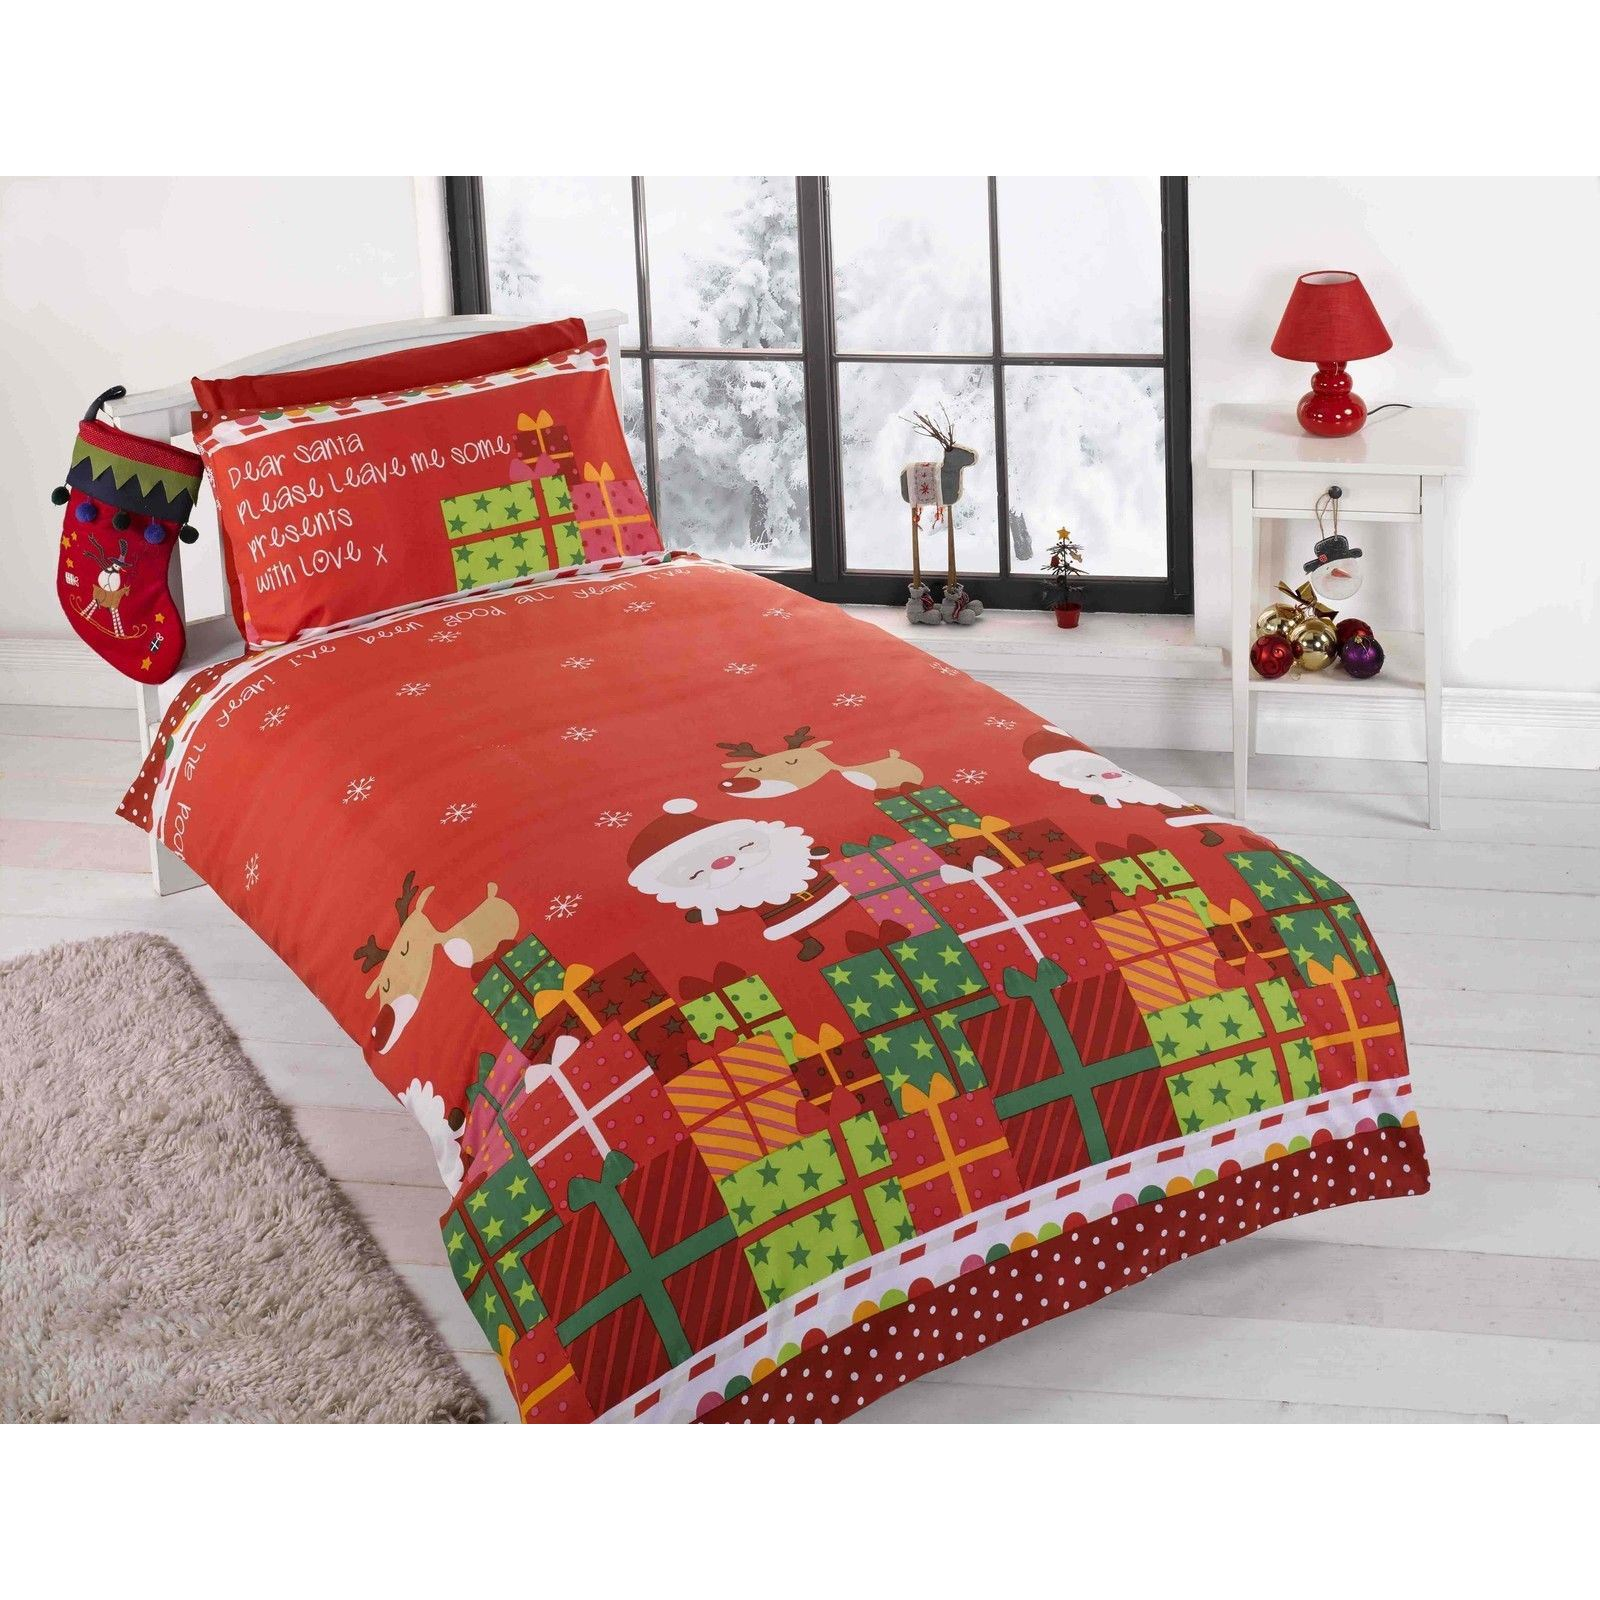 CHRISTMAS DUVET COVER SETS BEDDING KIDS SANTA REINDEER - JUNIOR ...